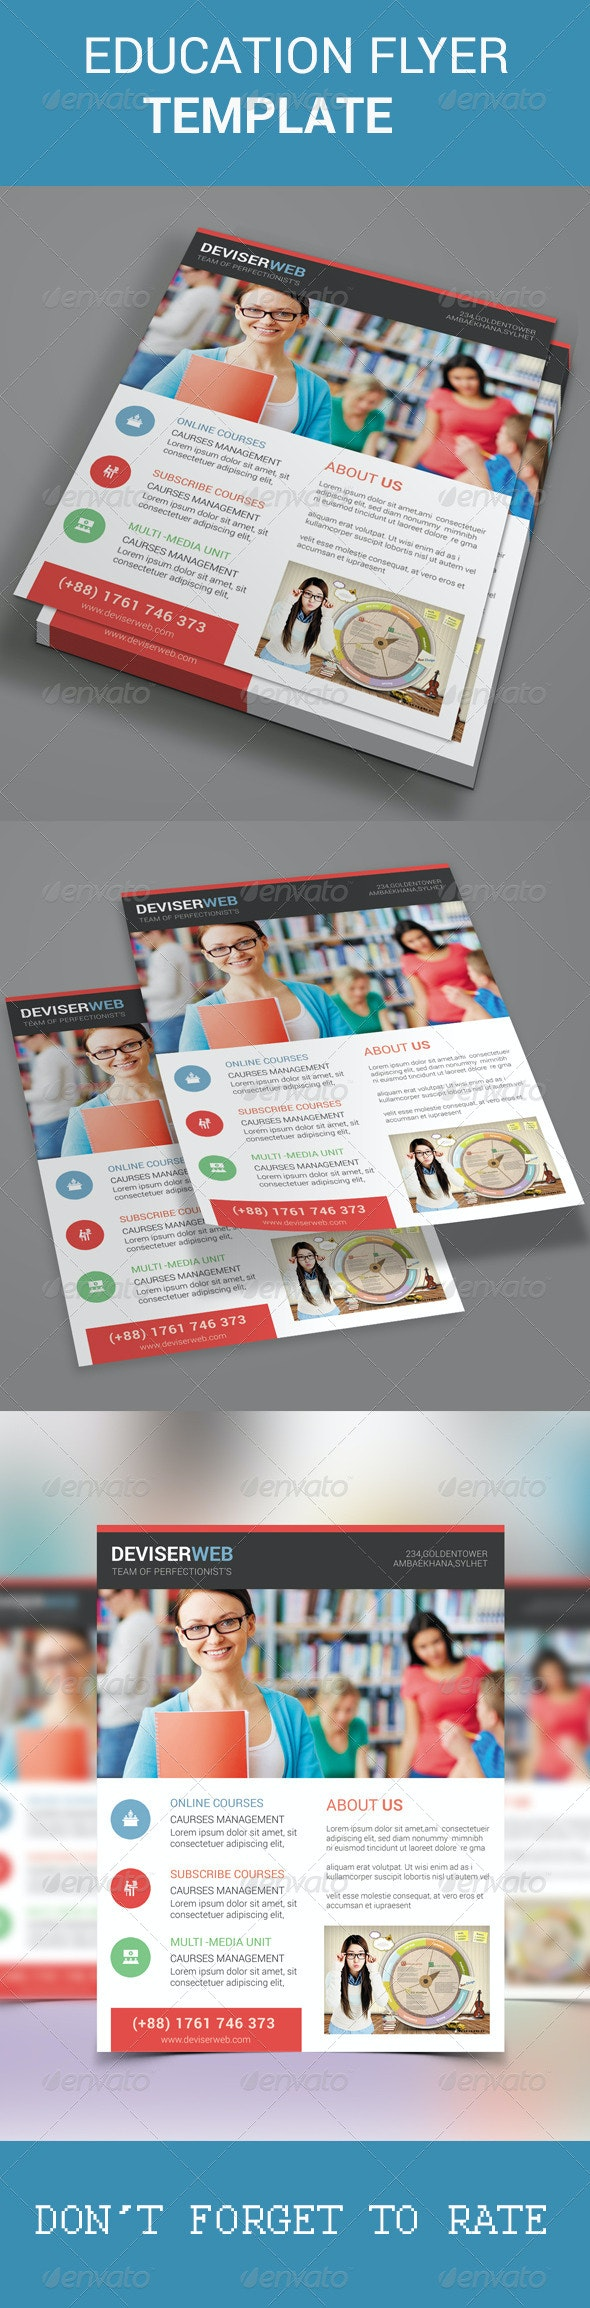 Educational Flyer Template - Corporate Flyers